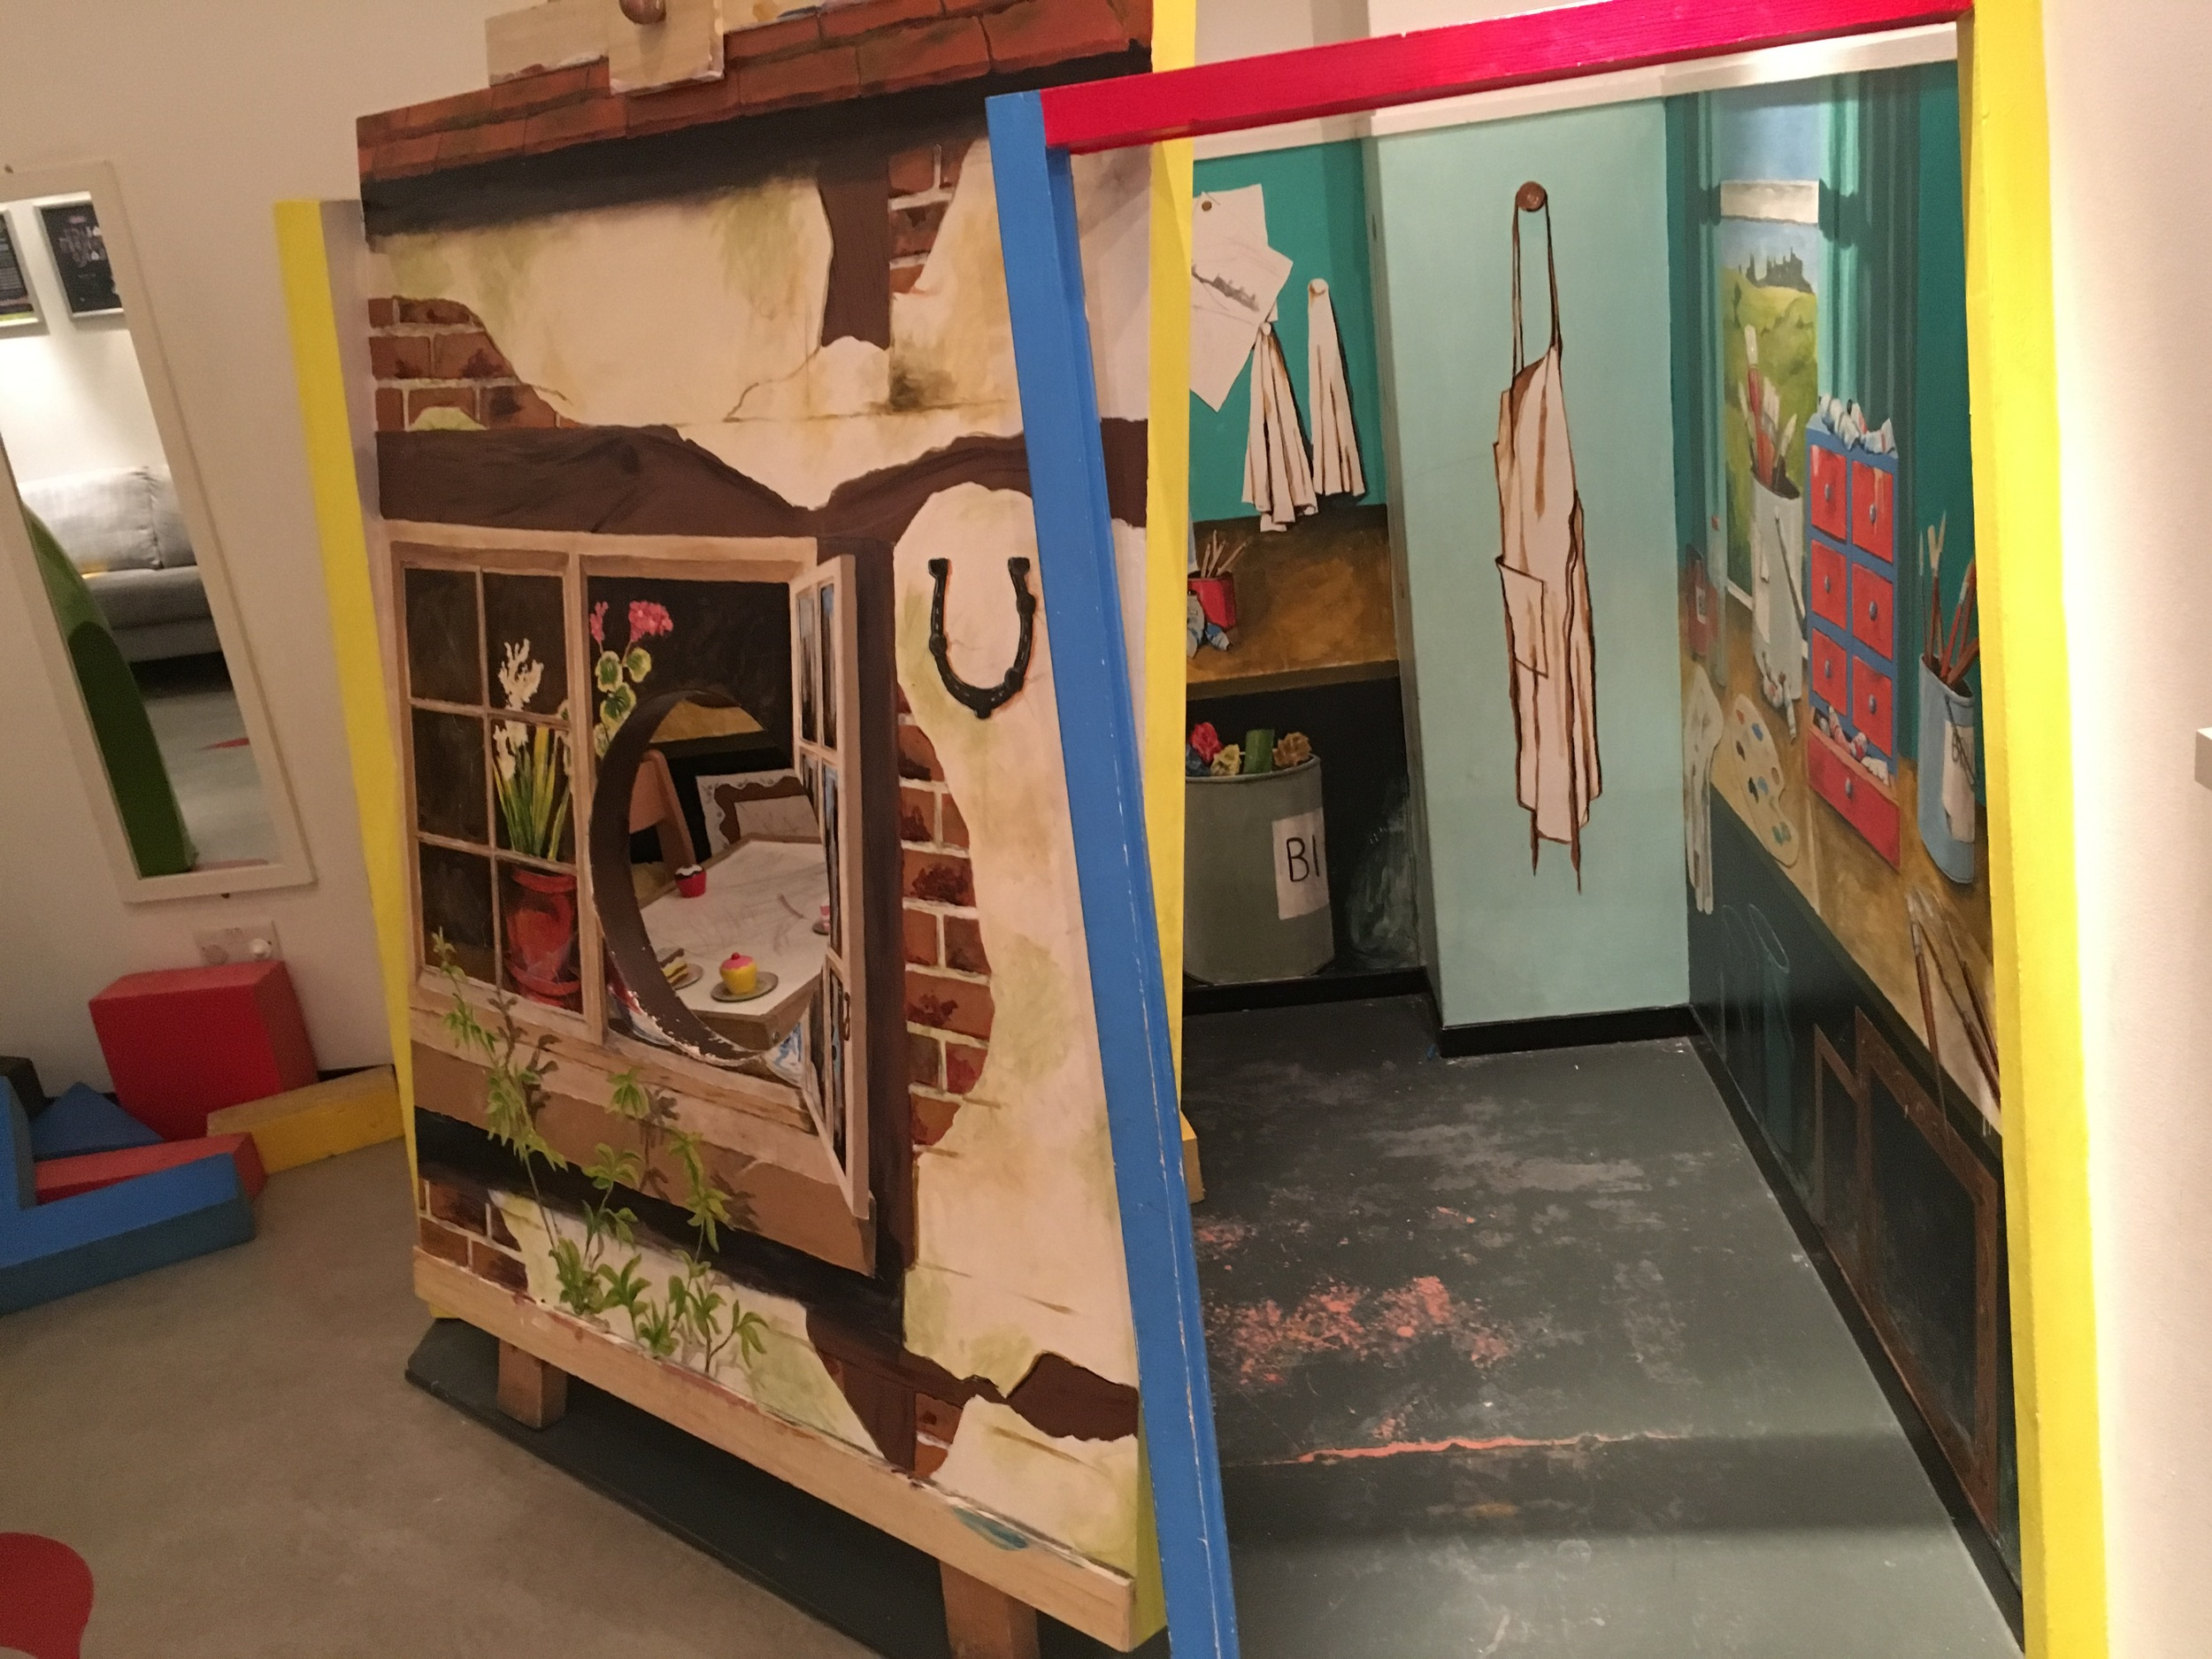 You can't see well from this photo, but this was a miniature house for kids to go into. It was decorated with lots of wall stickers, and through the window you can just see there was a table and chairs set up with some food pieces to play with.